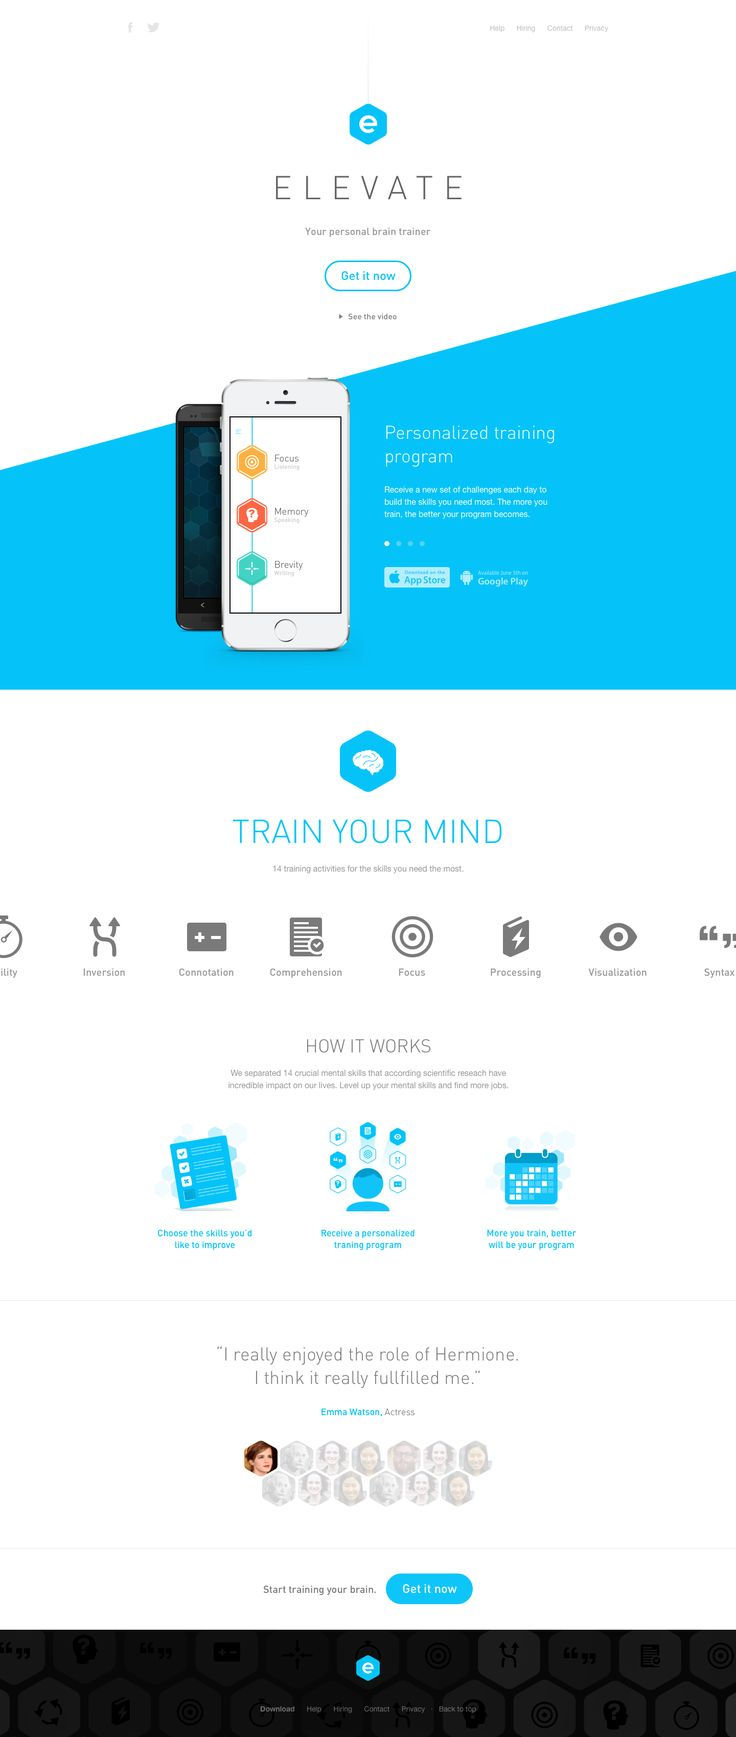 Best 89 module / infographic / photo / ill / iconography images on ...